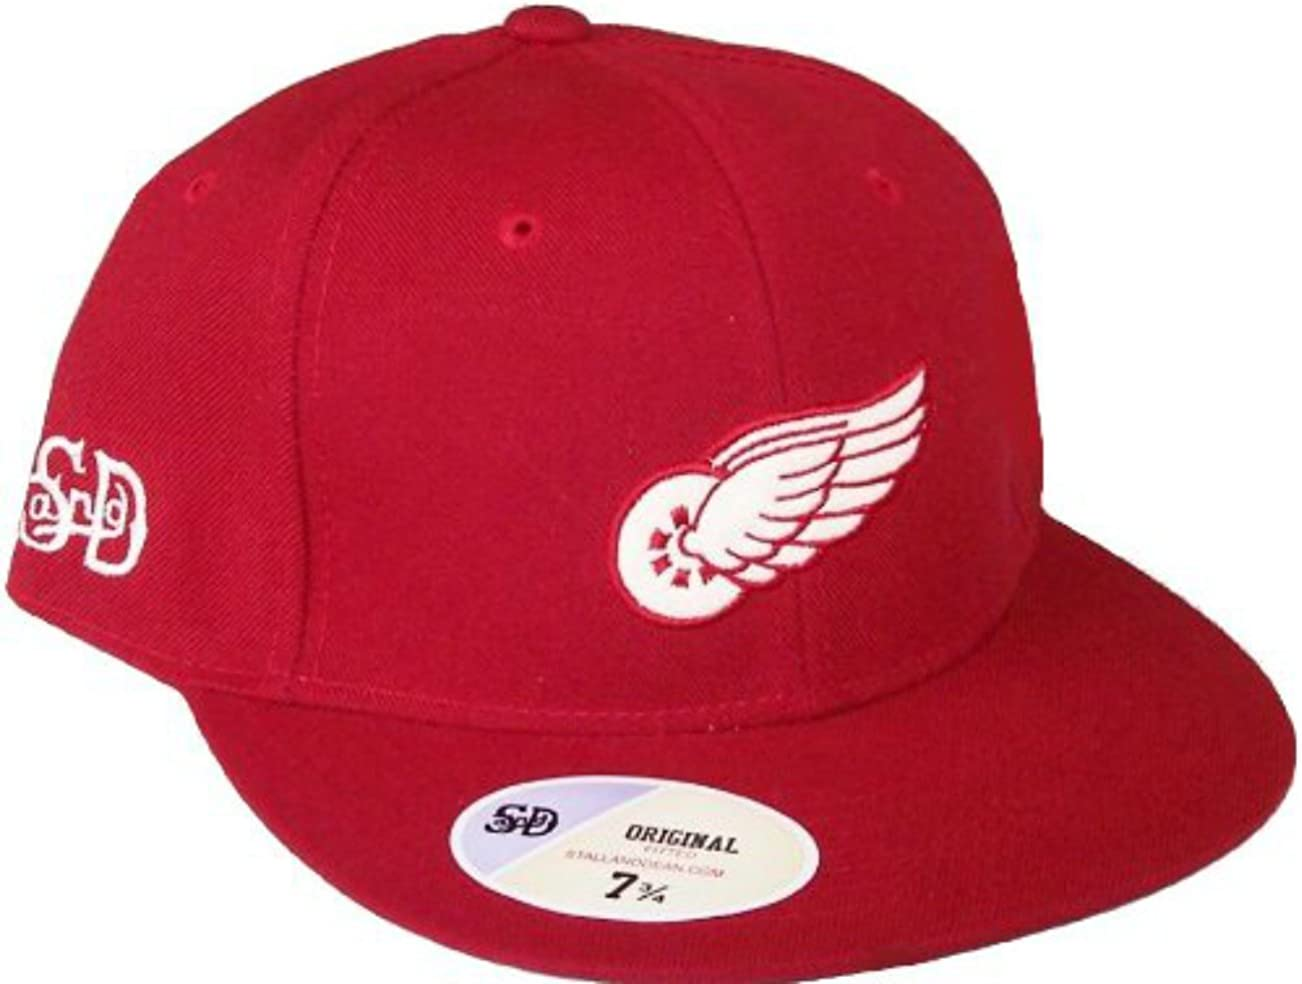 Genuine Merchandise Detroit Red Wings Vintage Logo Red Fitted 7 7//8 Hat Cap